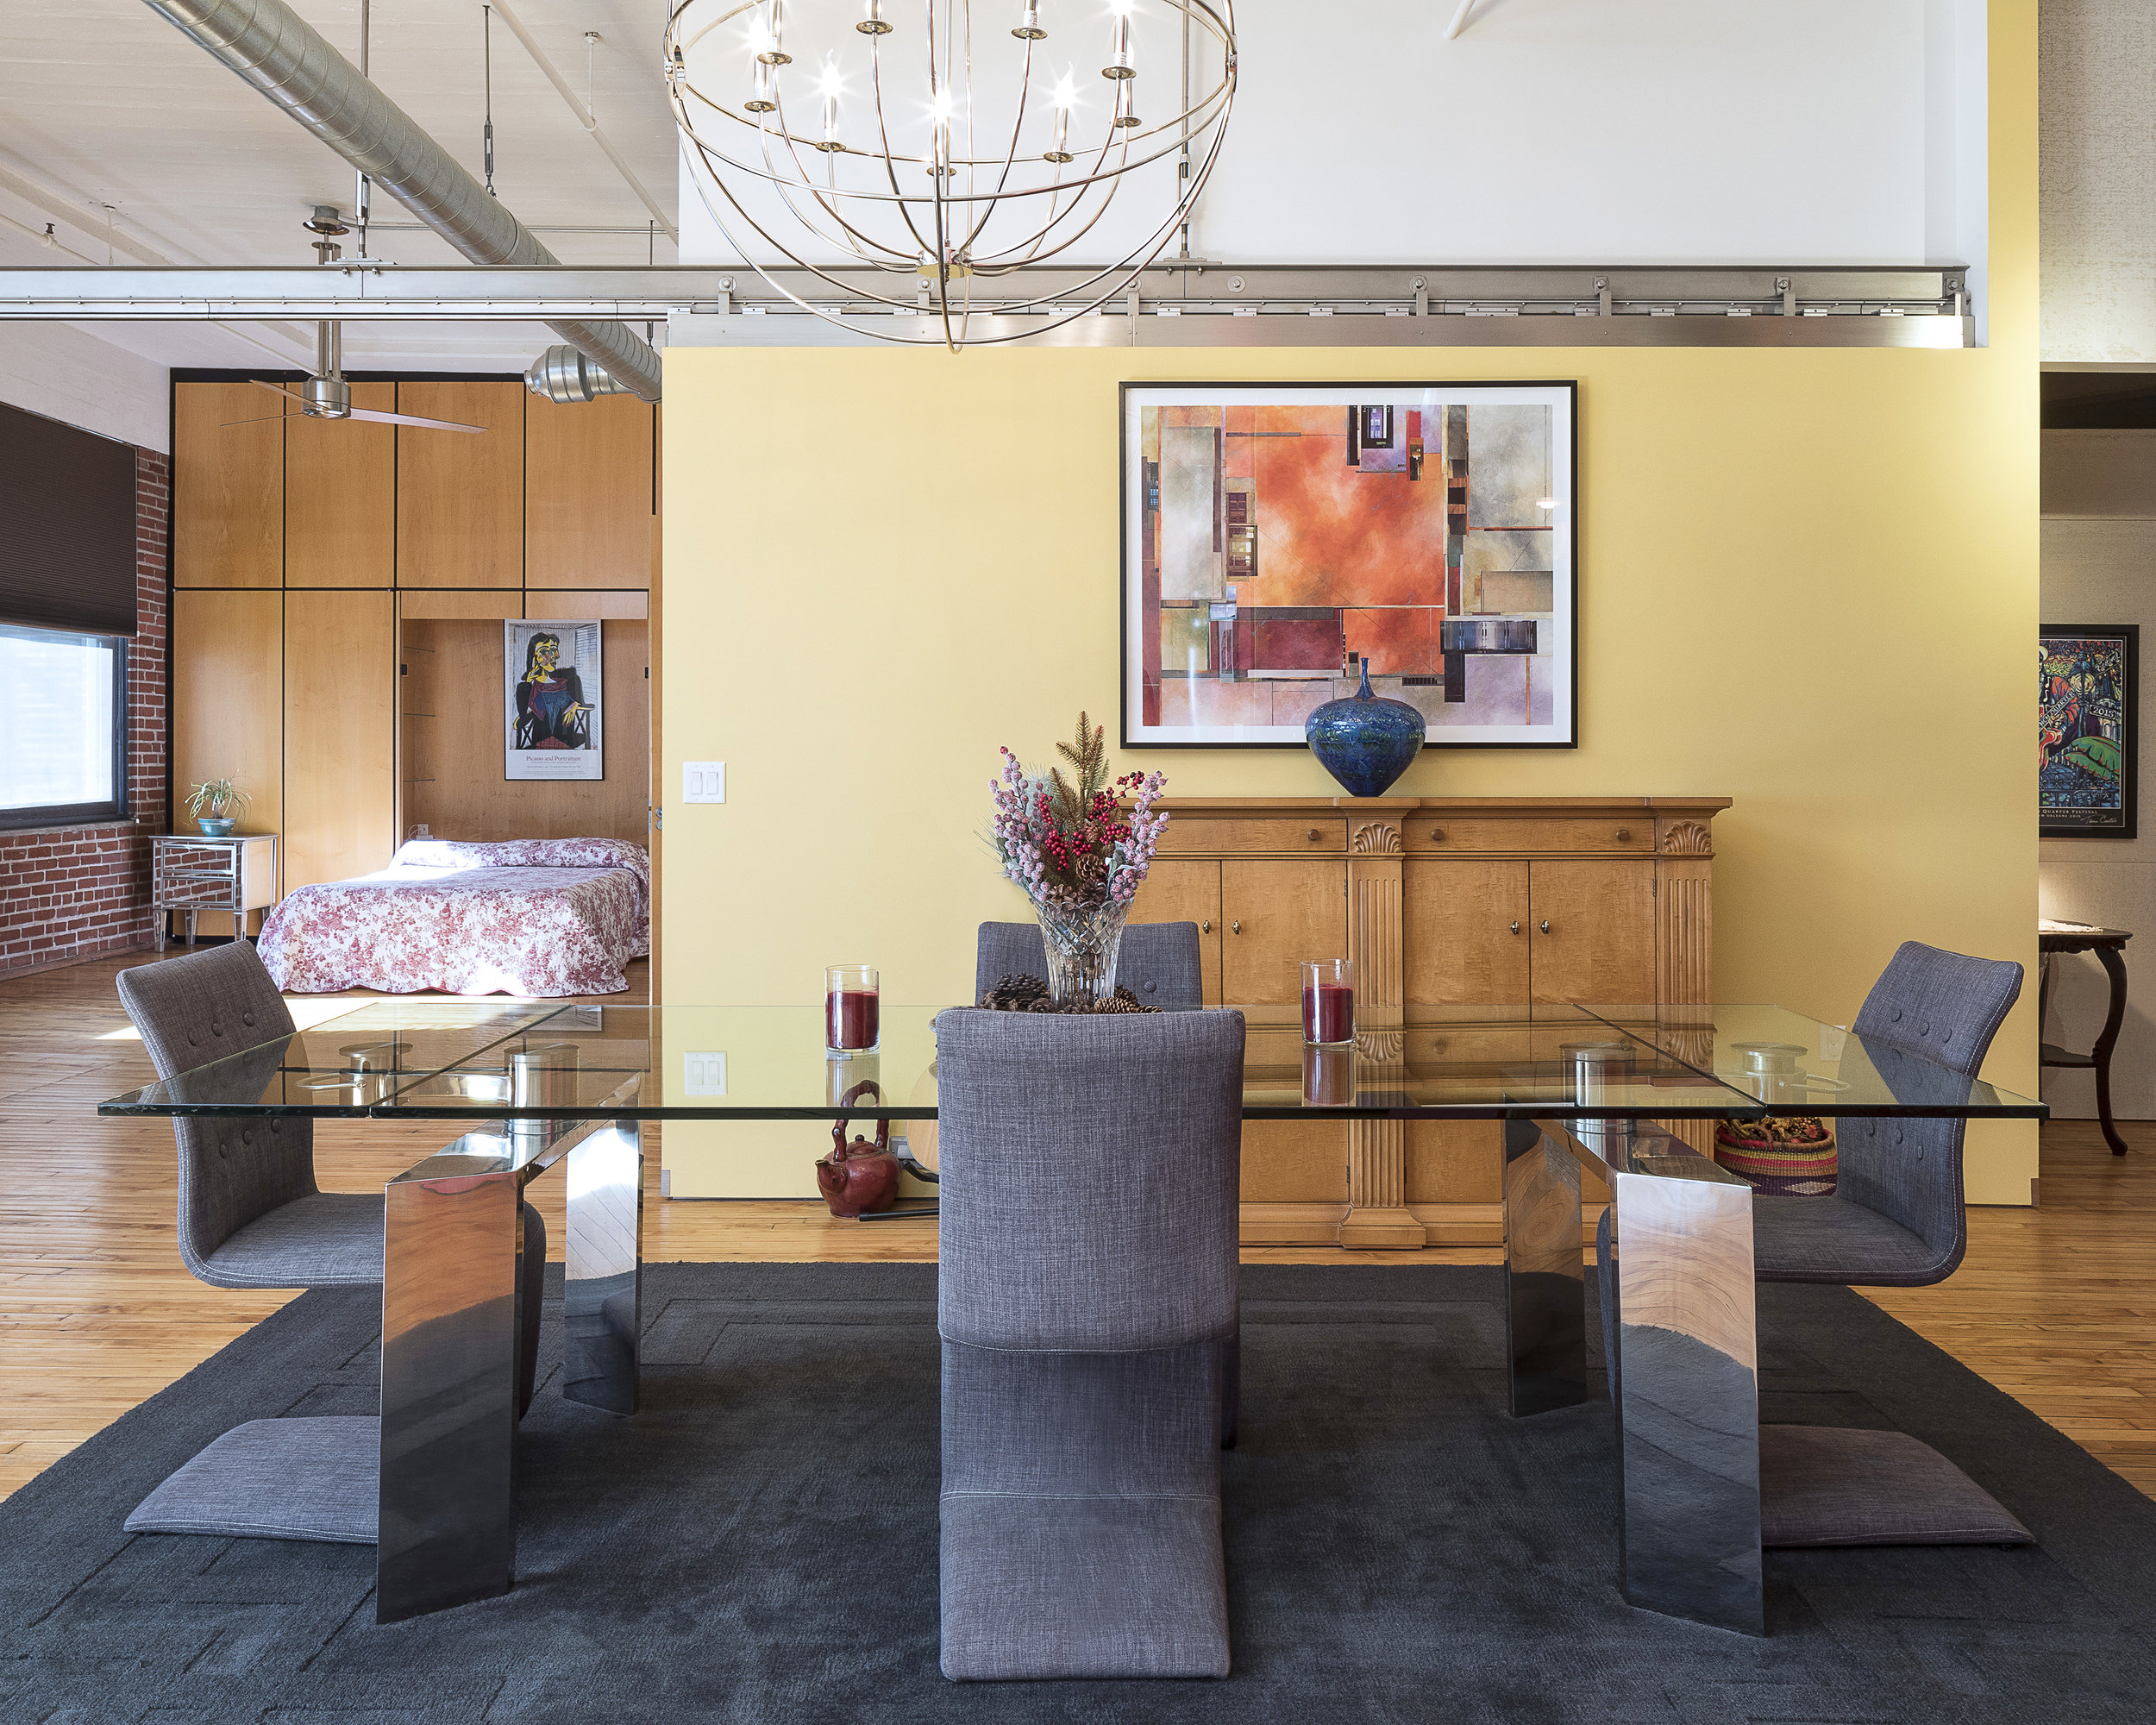 Downtown St. Louis, Missouri loft with yellow walls, a glass four chair table with dried flowers and deep red candles in the foreground, and a bedroom with a brick wall and tall yellow cabinets on the left. Photography by Jason Lusk of Missouri Home Tours, LLC.